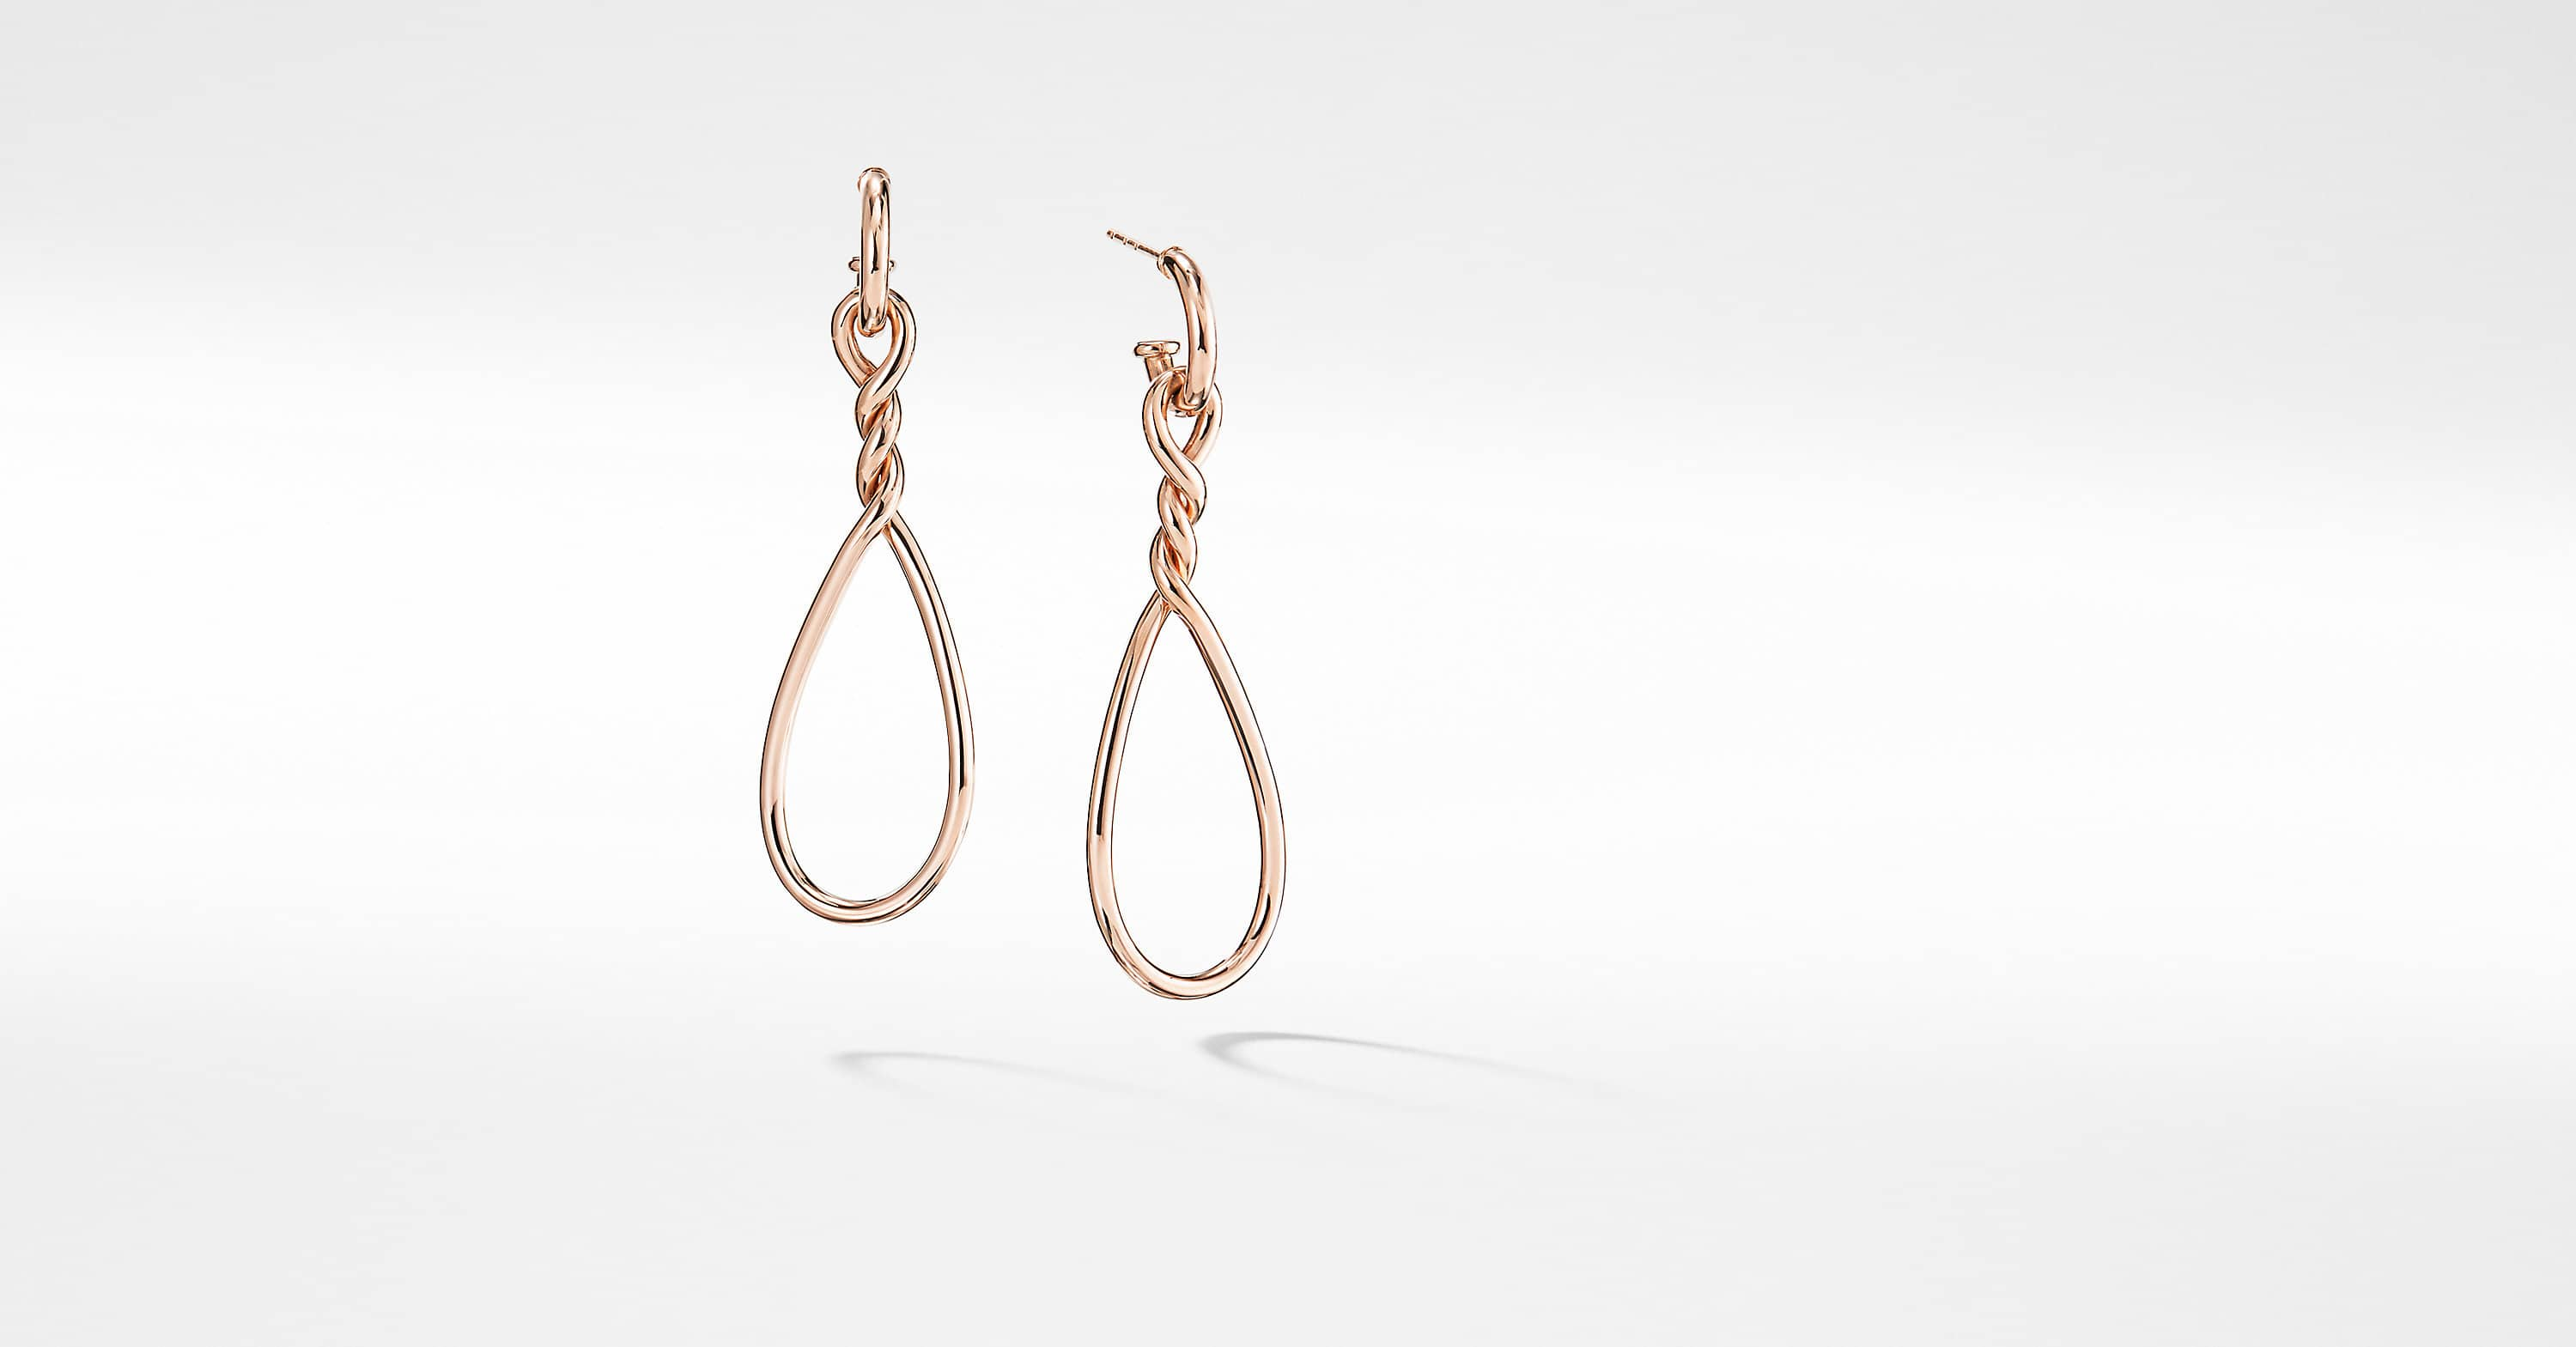 Continuance Large Drop Earrings in 18K Rose Gold